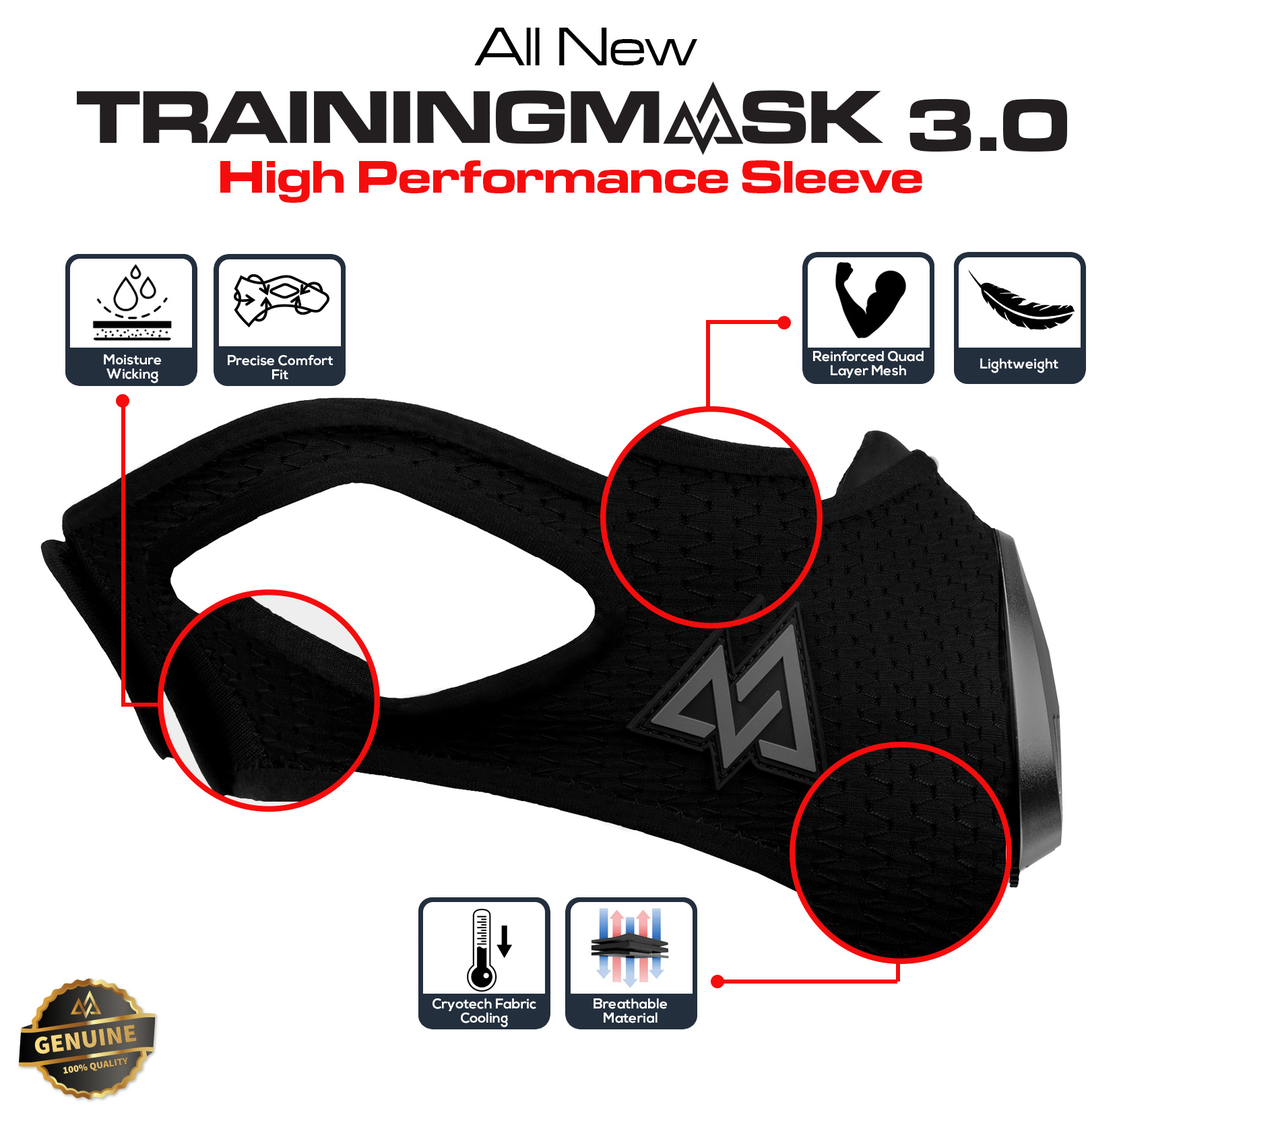 Training Mask 3.0 Insane Sleeve